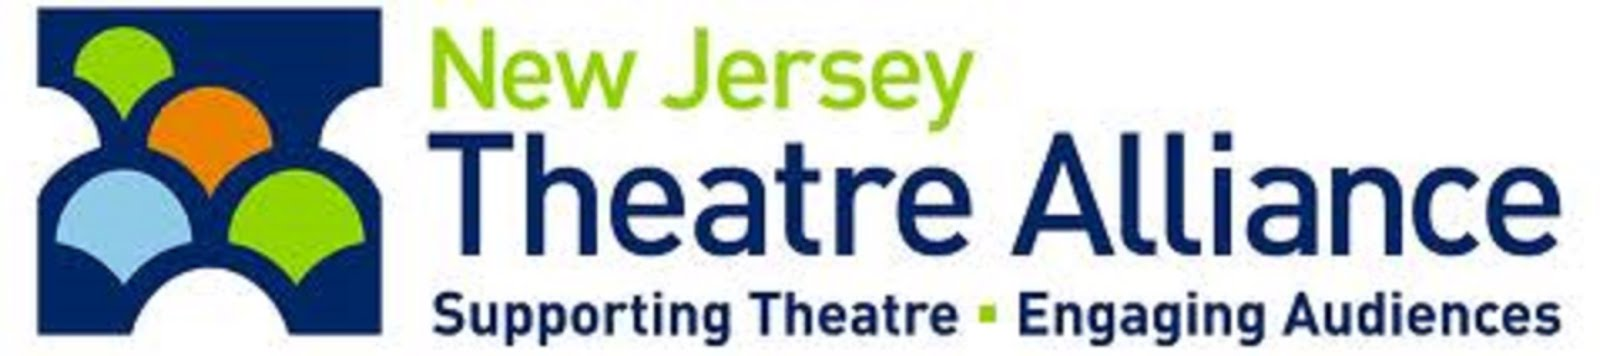 Visit NJ Theatre Alliance